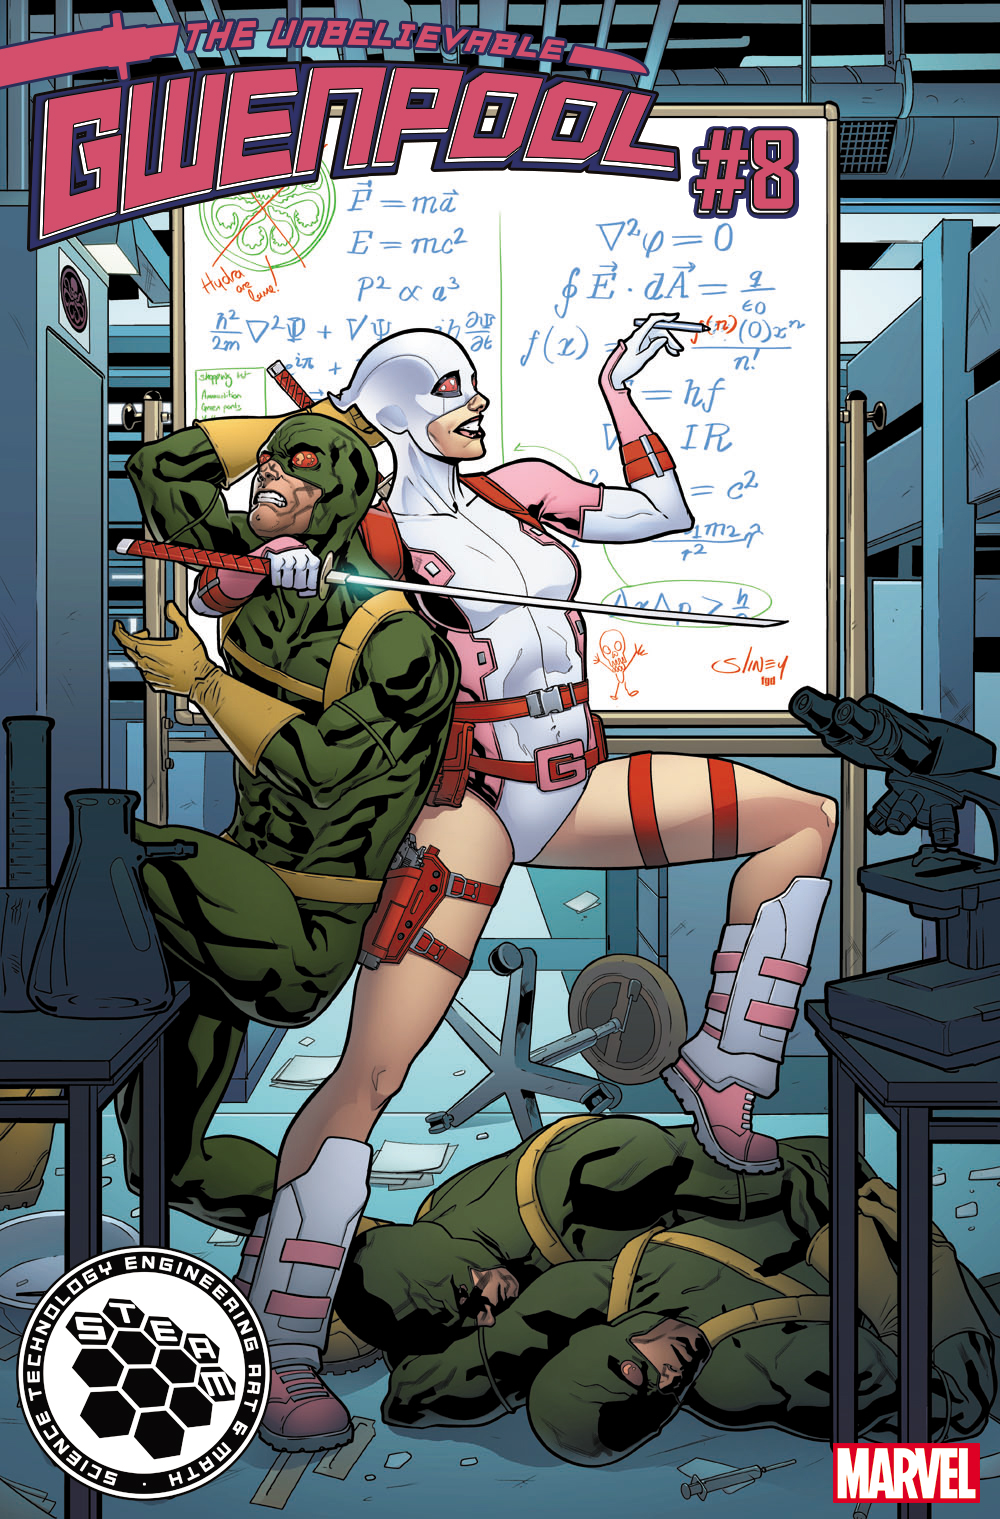 M (math) – GWENPOOL #8 by Will Sliney